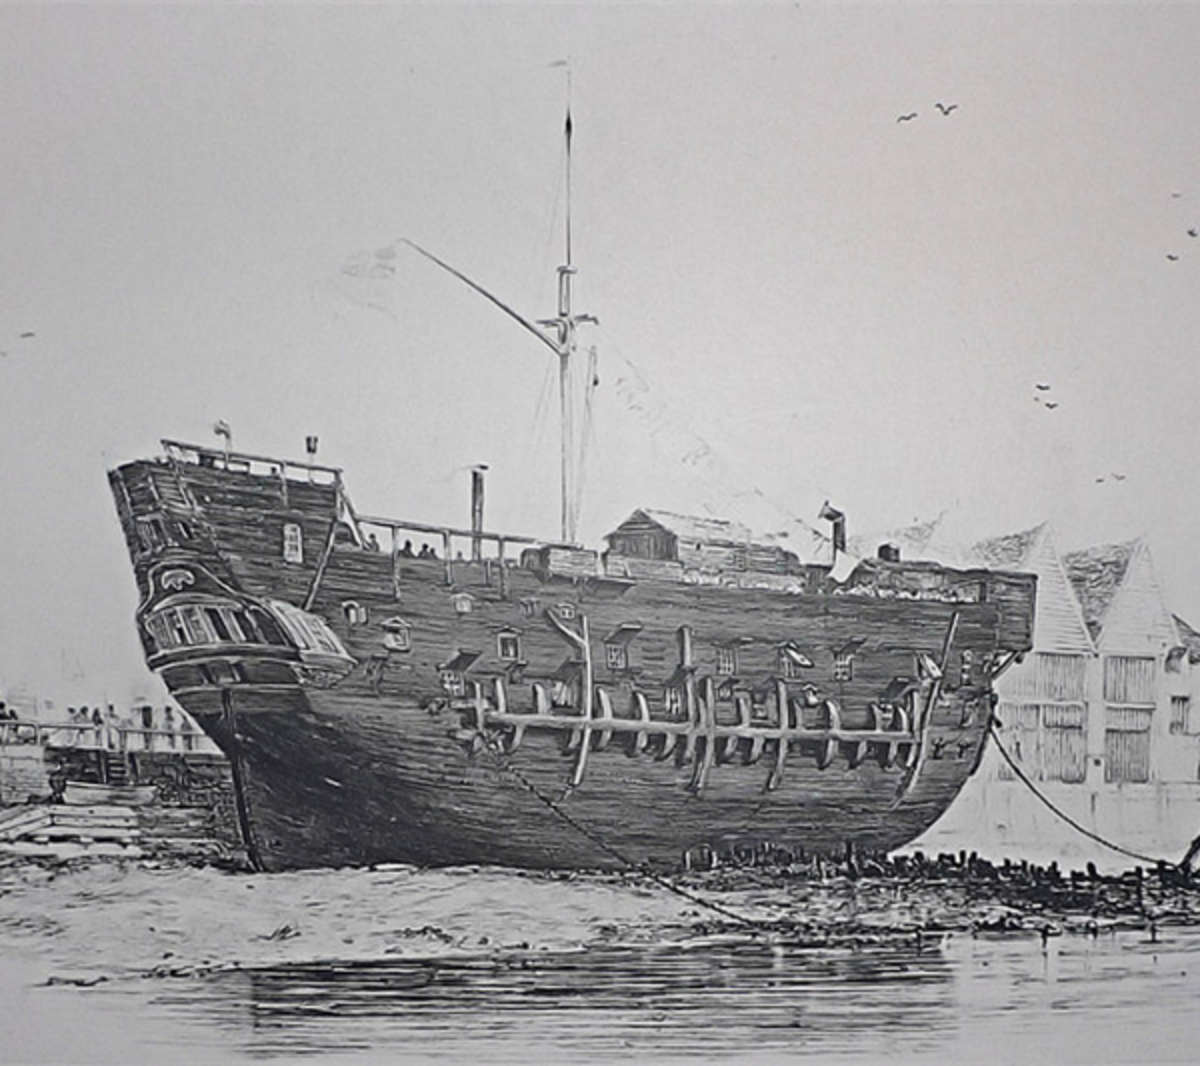 The beached convict ship HMS Discovery at Deptford. Launched as a 10-gun sloop at Rotherhithe in 1789, the ship served as a convict hulk from 1818 until scrapped in February 1834.